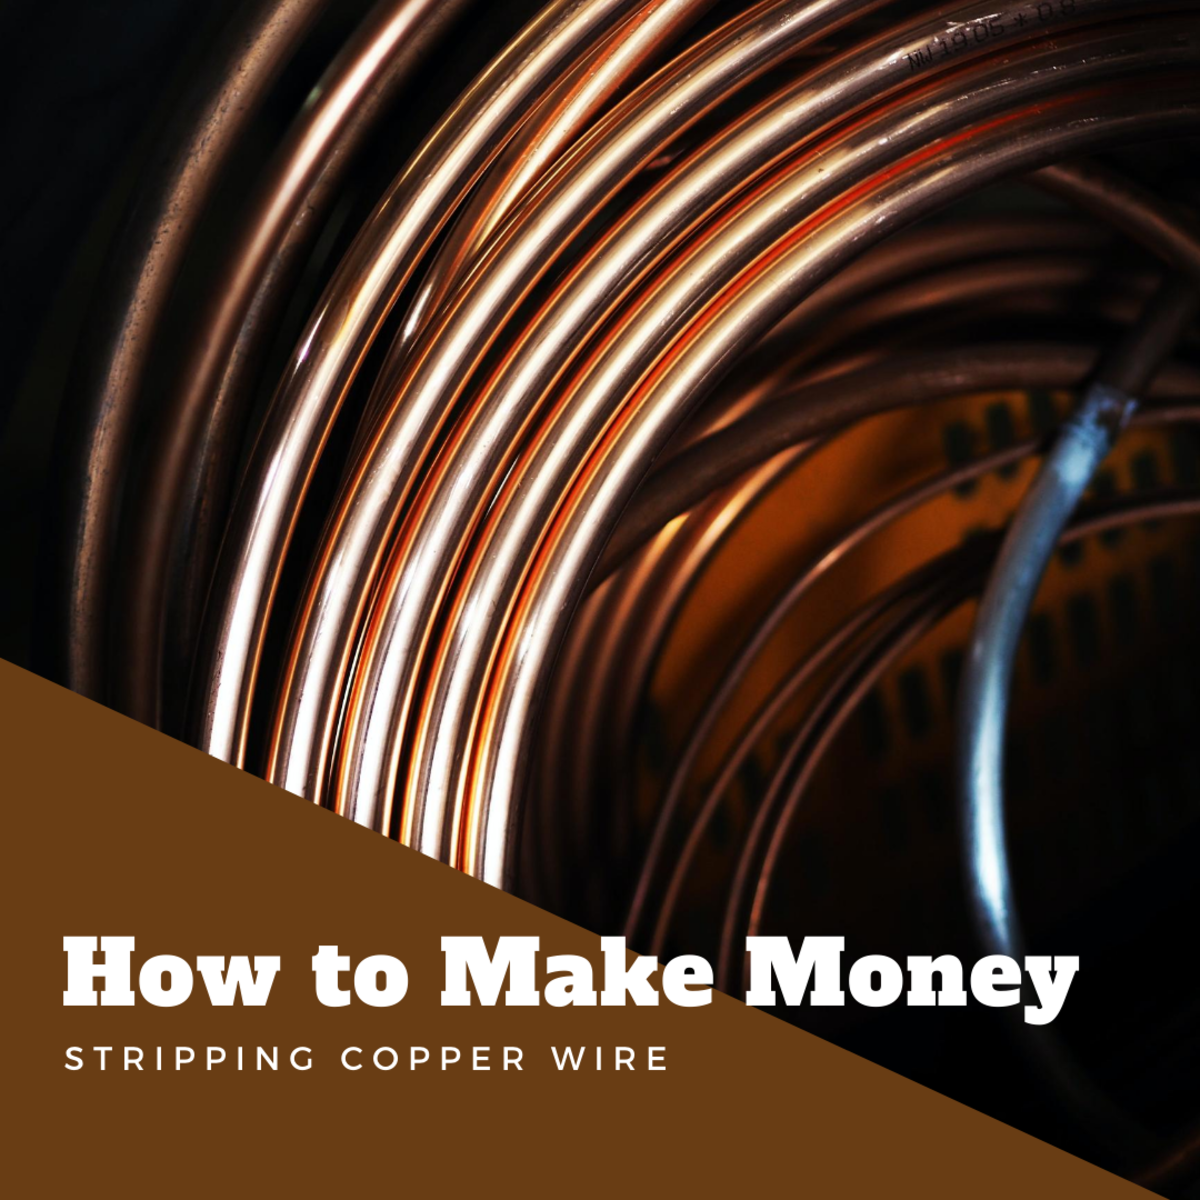 How Much Is Stripped Copper Wire Worth as Scrap?